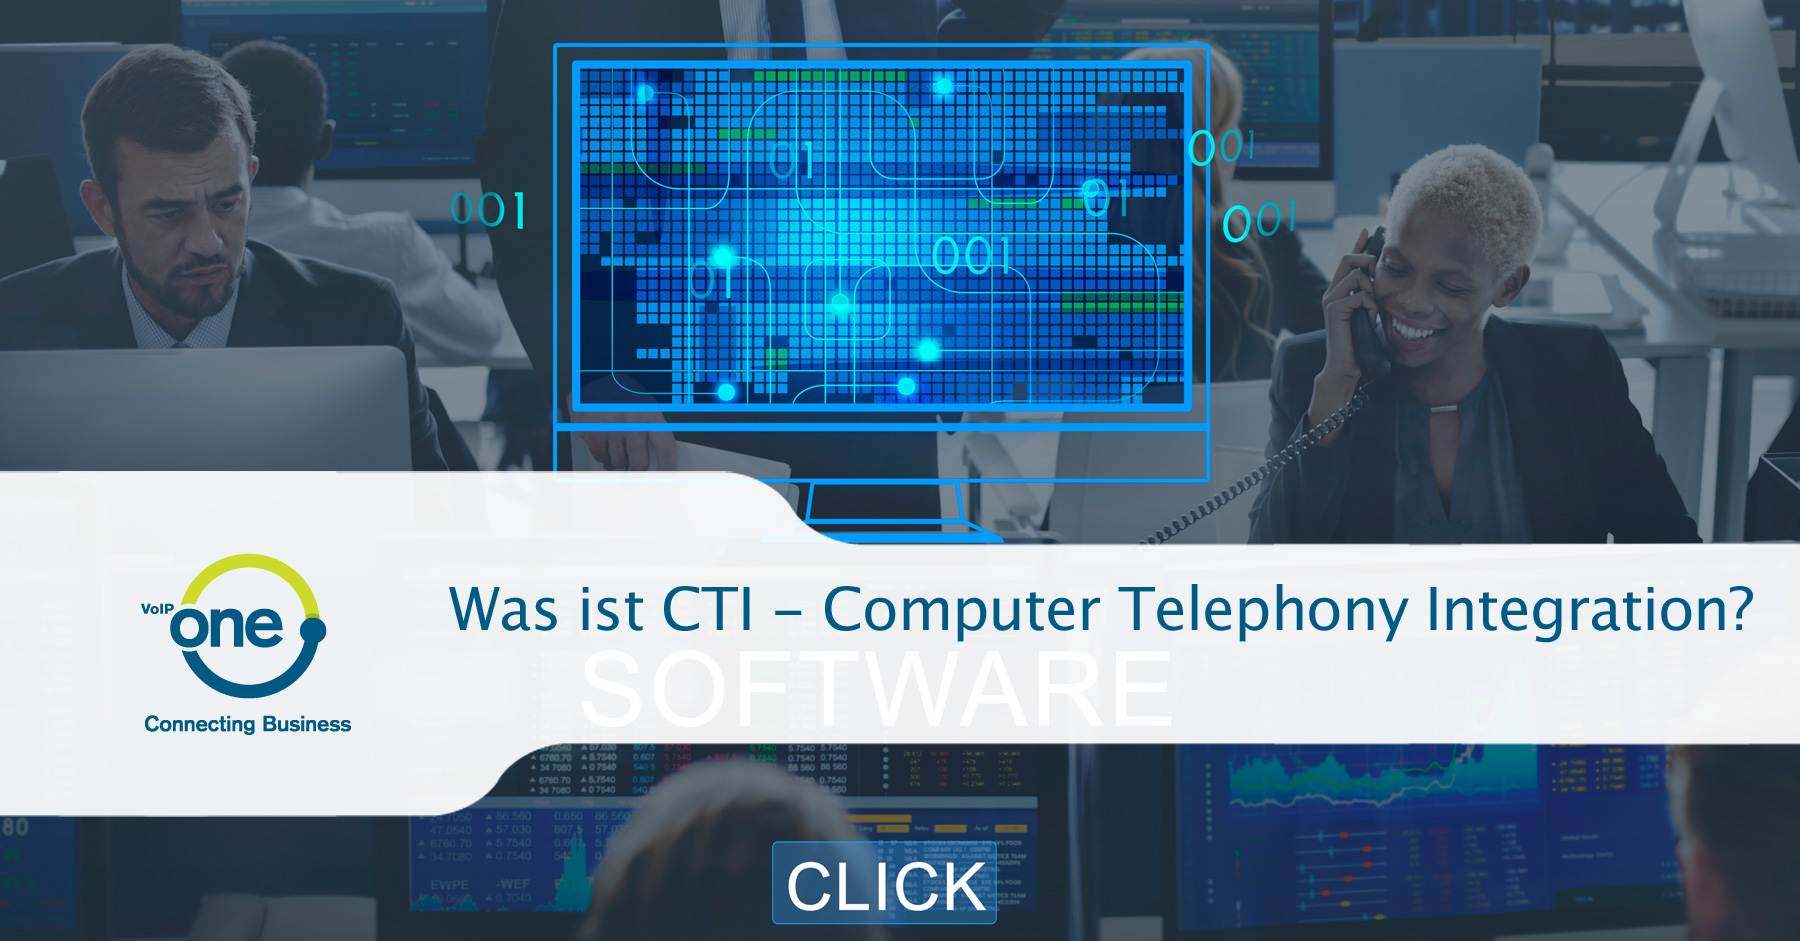 Was ist CTI - Computer Telephony Integration?